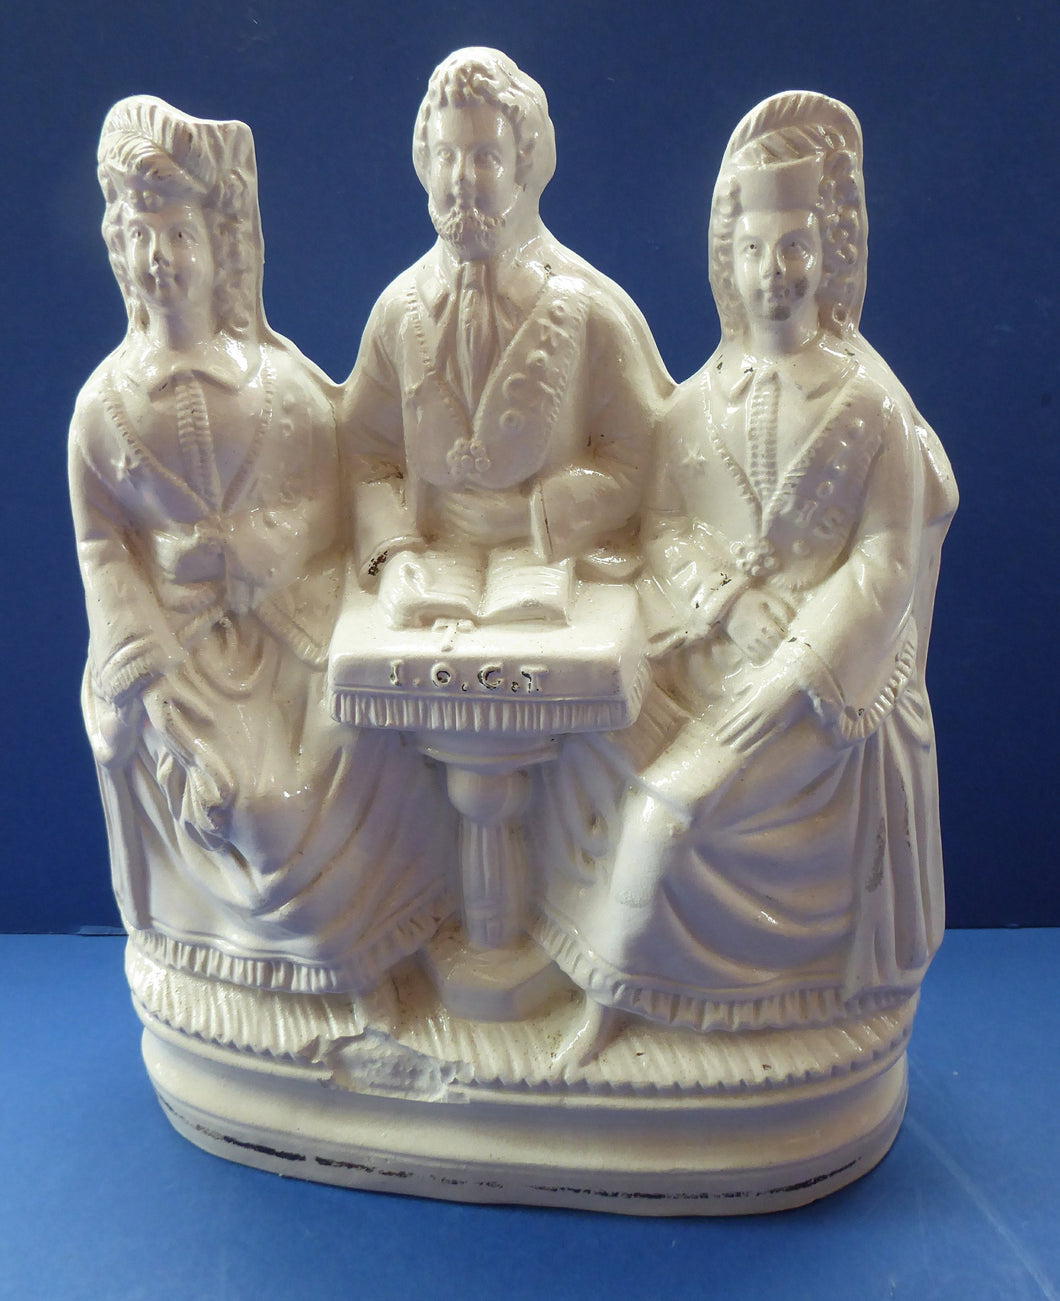 Rare 1860s Staffordshire Figurine: The Independent Order of Good Templars by Sampson Smith. Excellent Condition